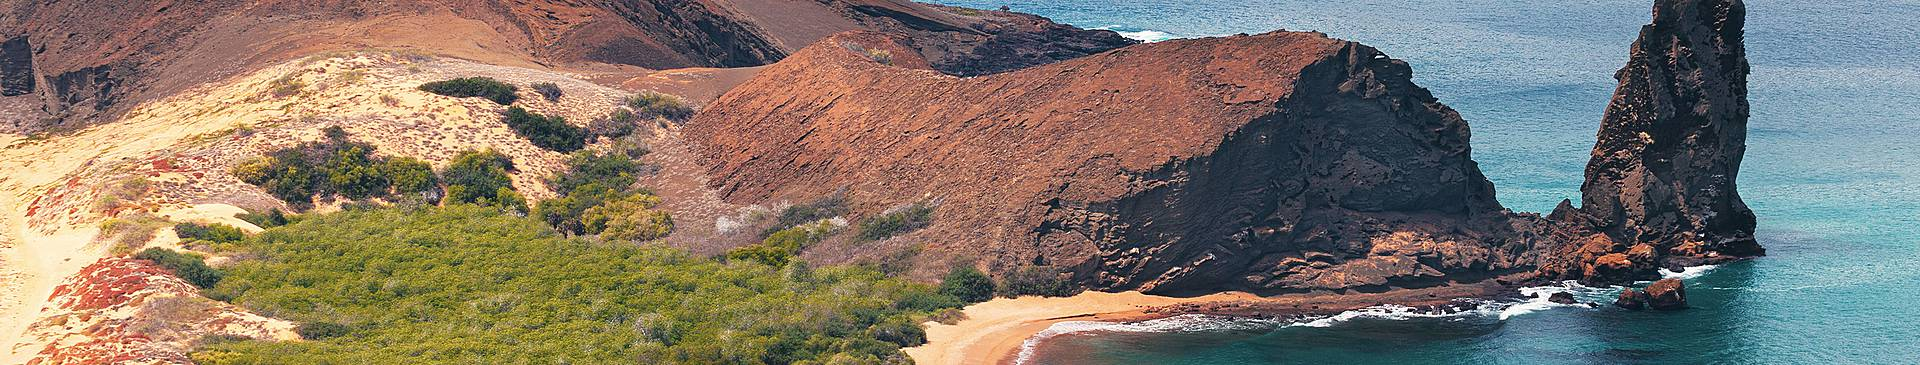 Island-hopping in the Galapagos